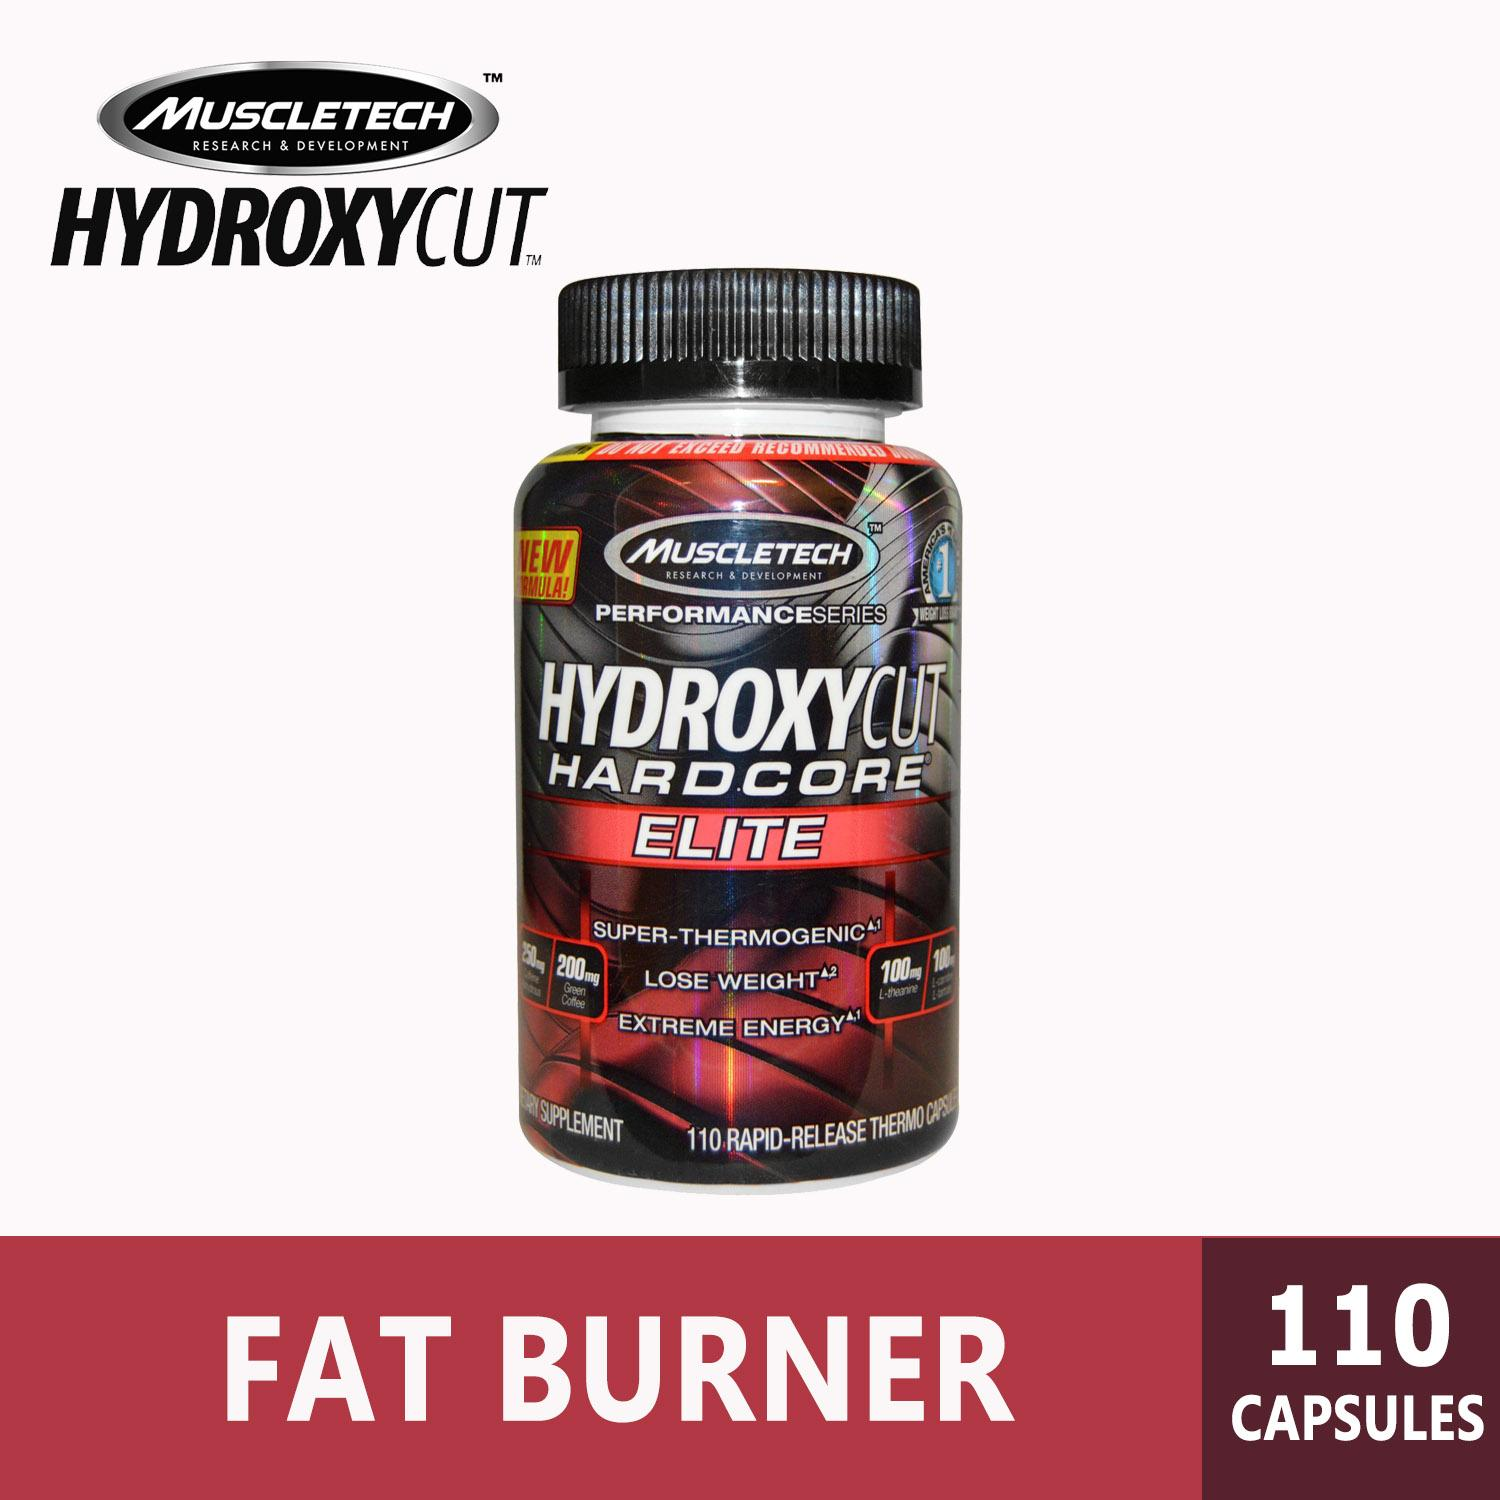 Hydroxycut Elite, Performance Series, Hardcore Fat Burner, 110 Rapid-Release Thermo Caps By Hna.